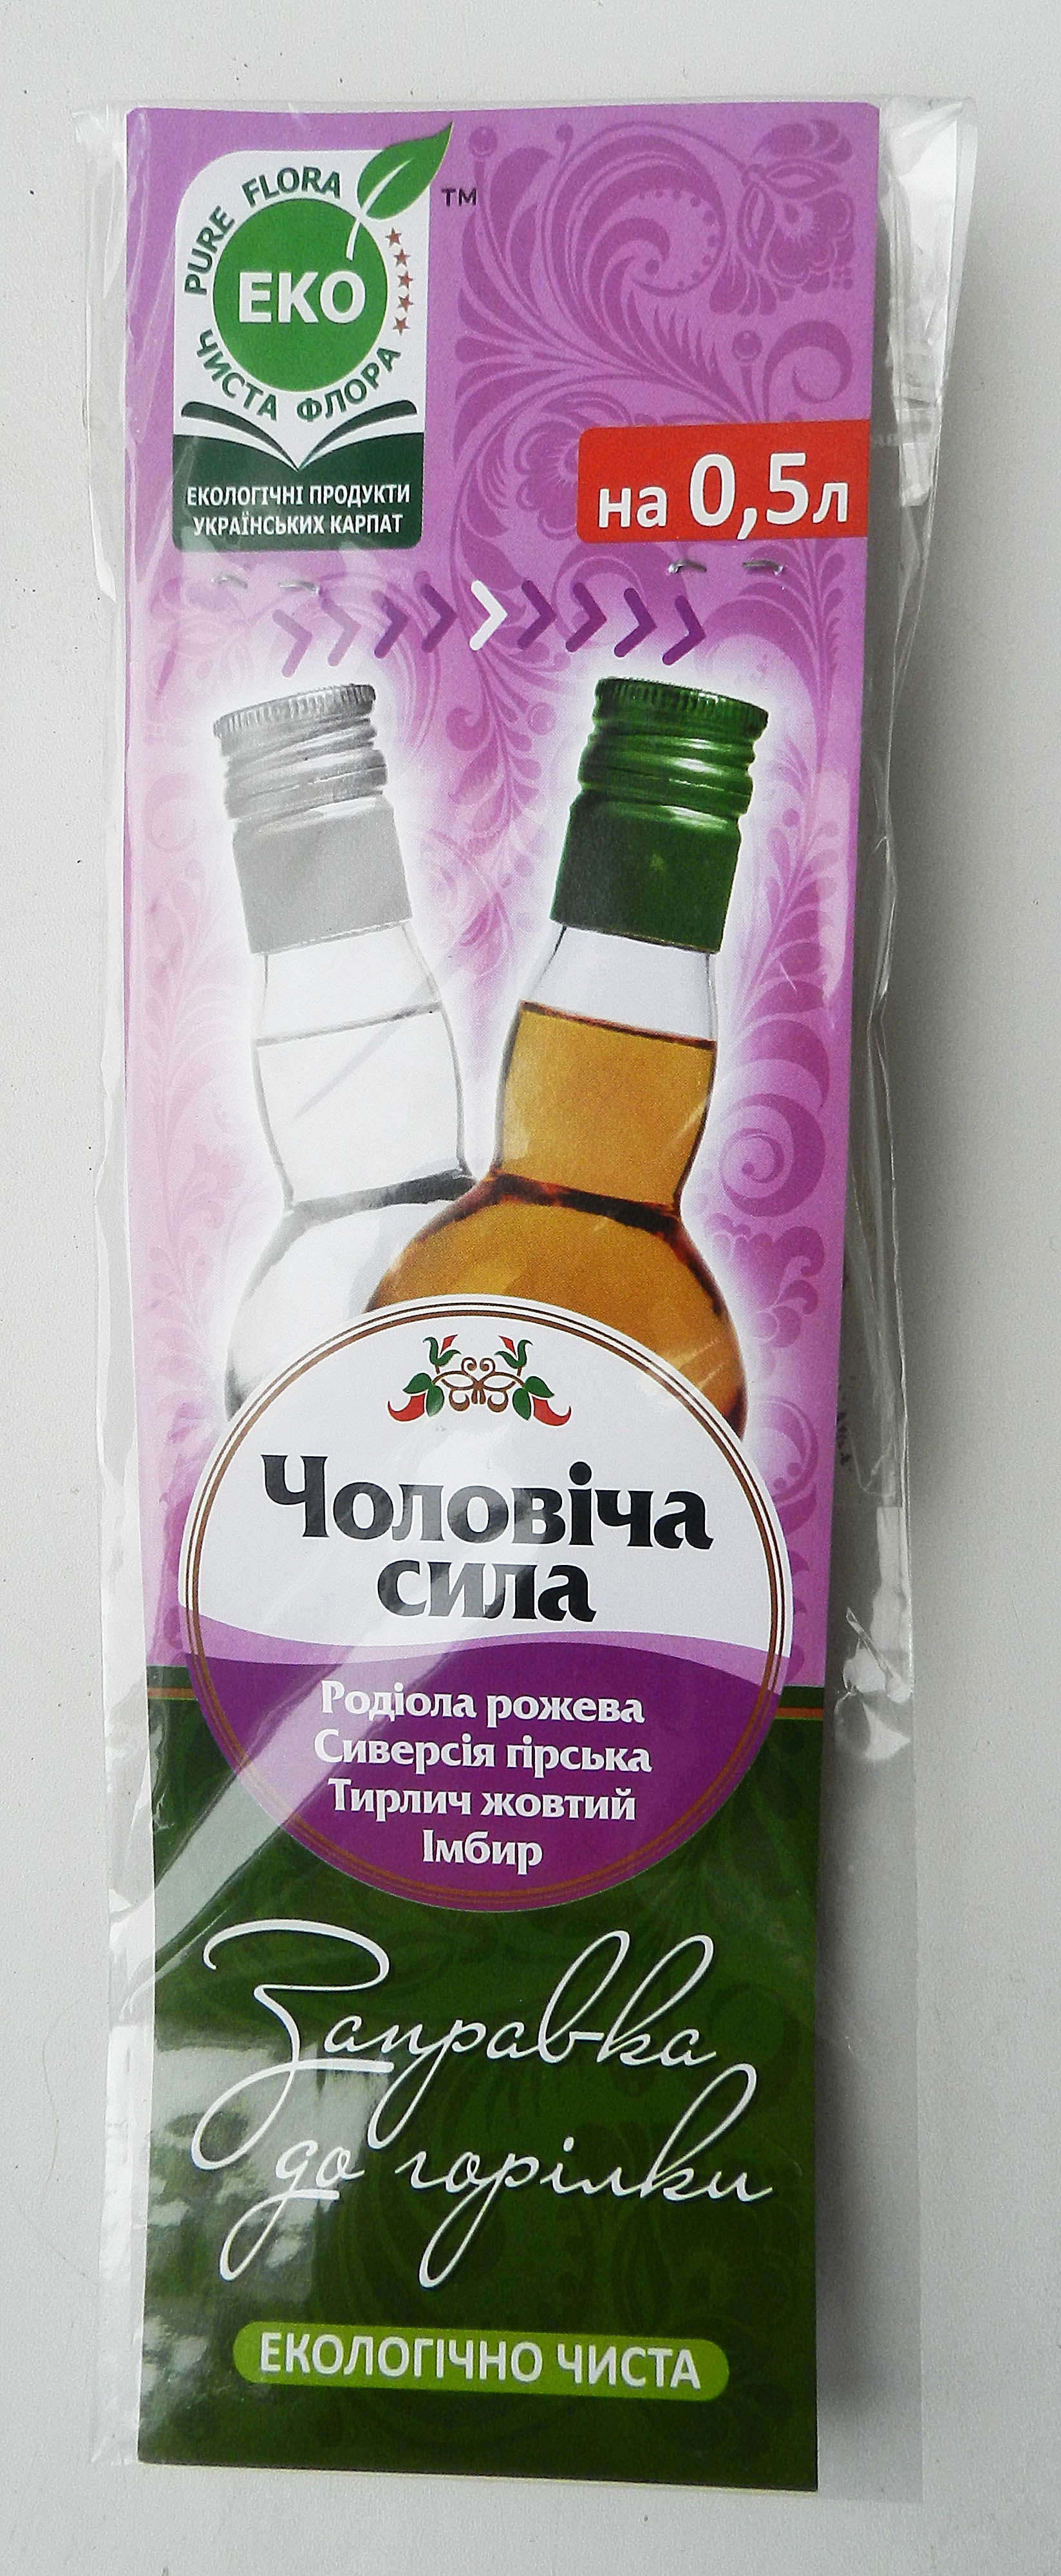 (alcohol drink with herbs)